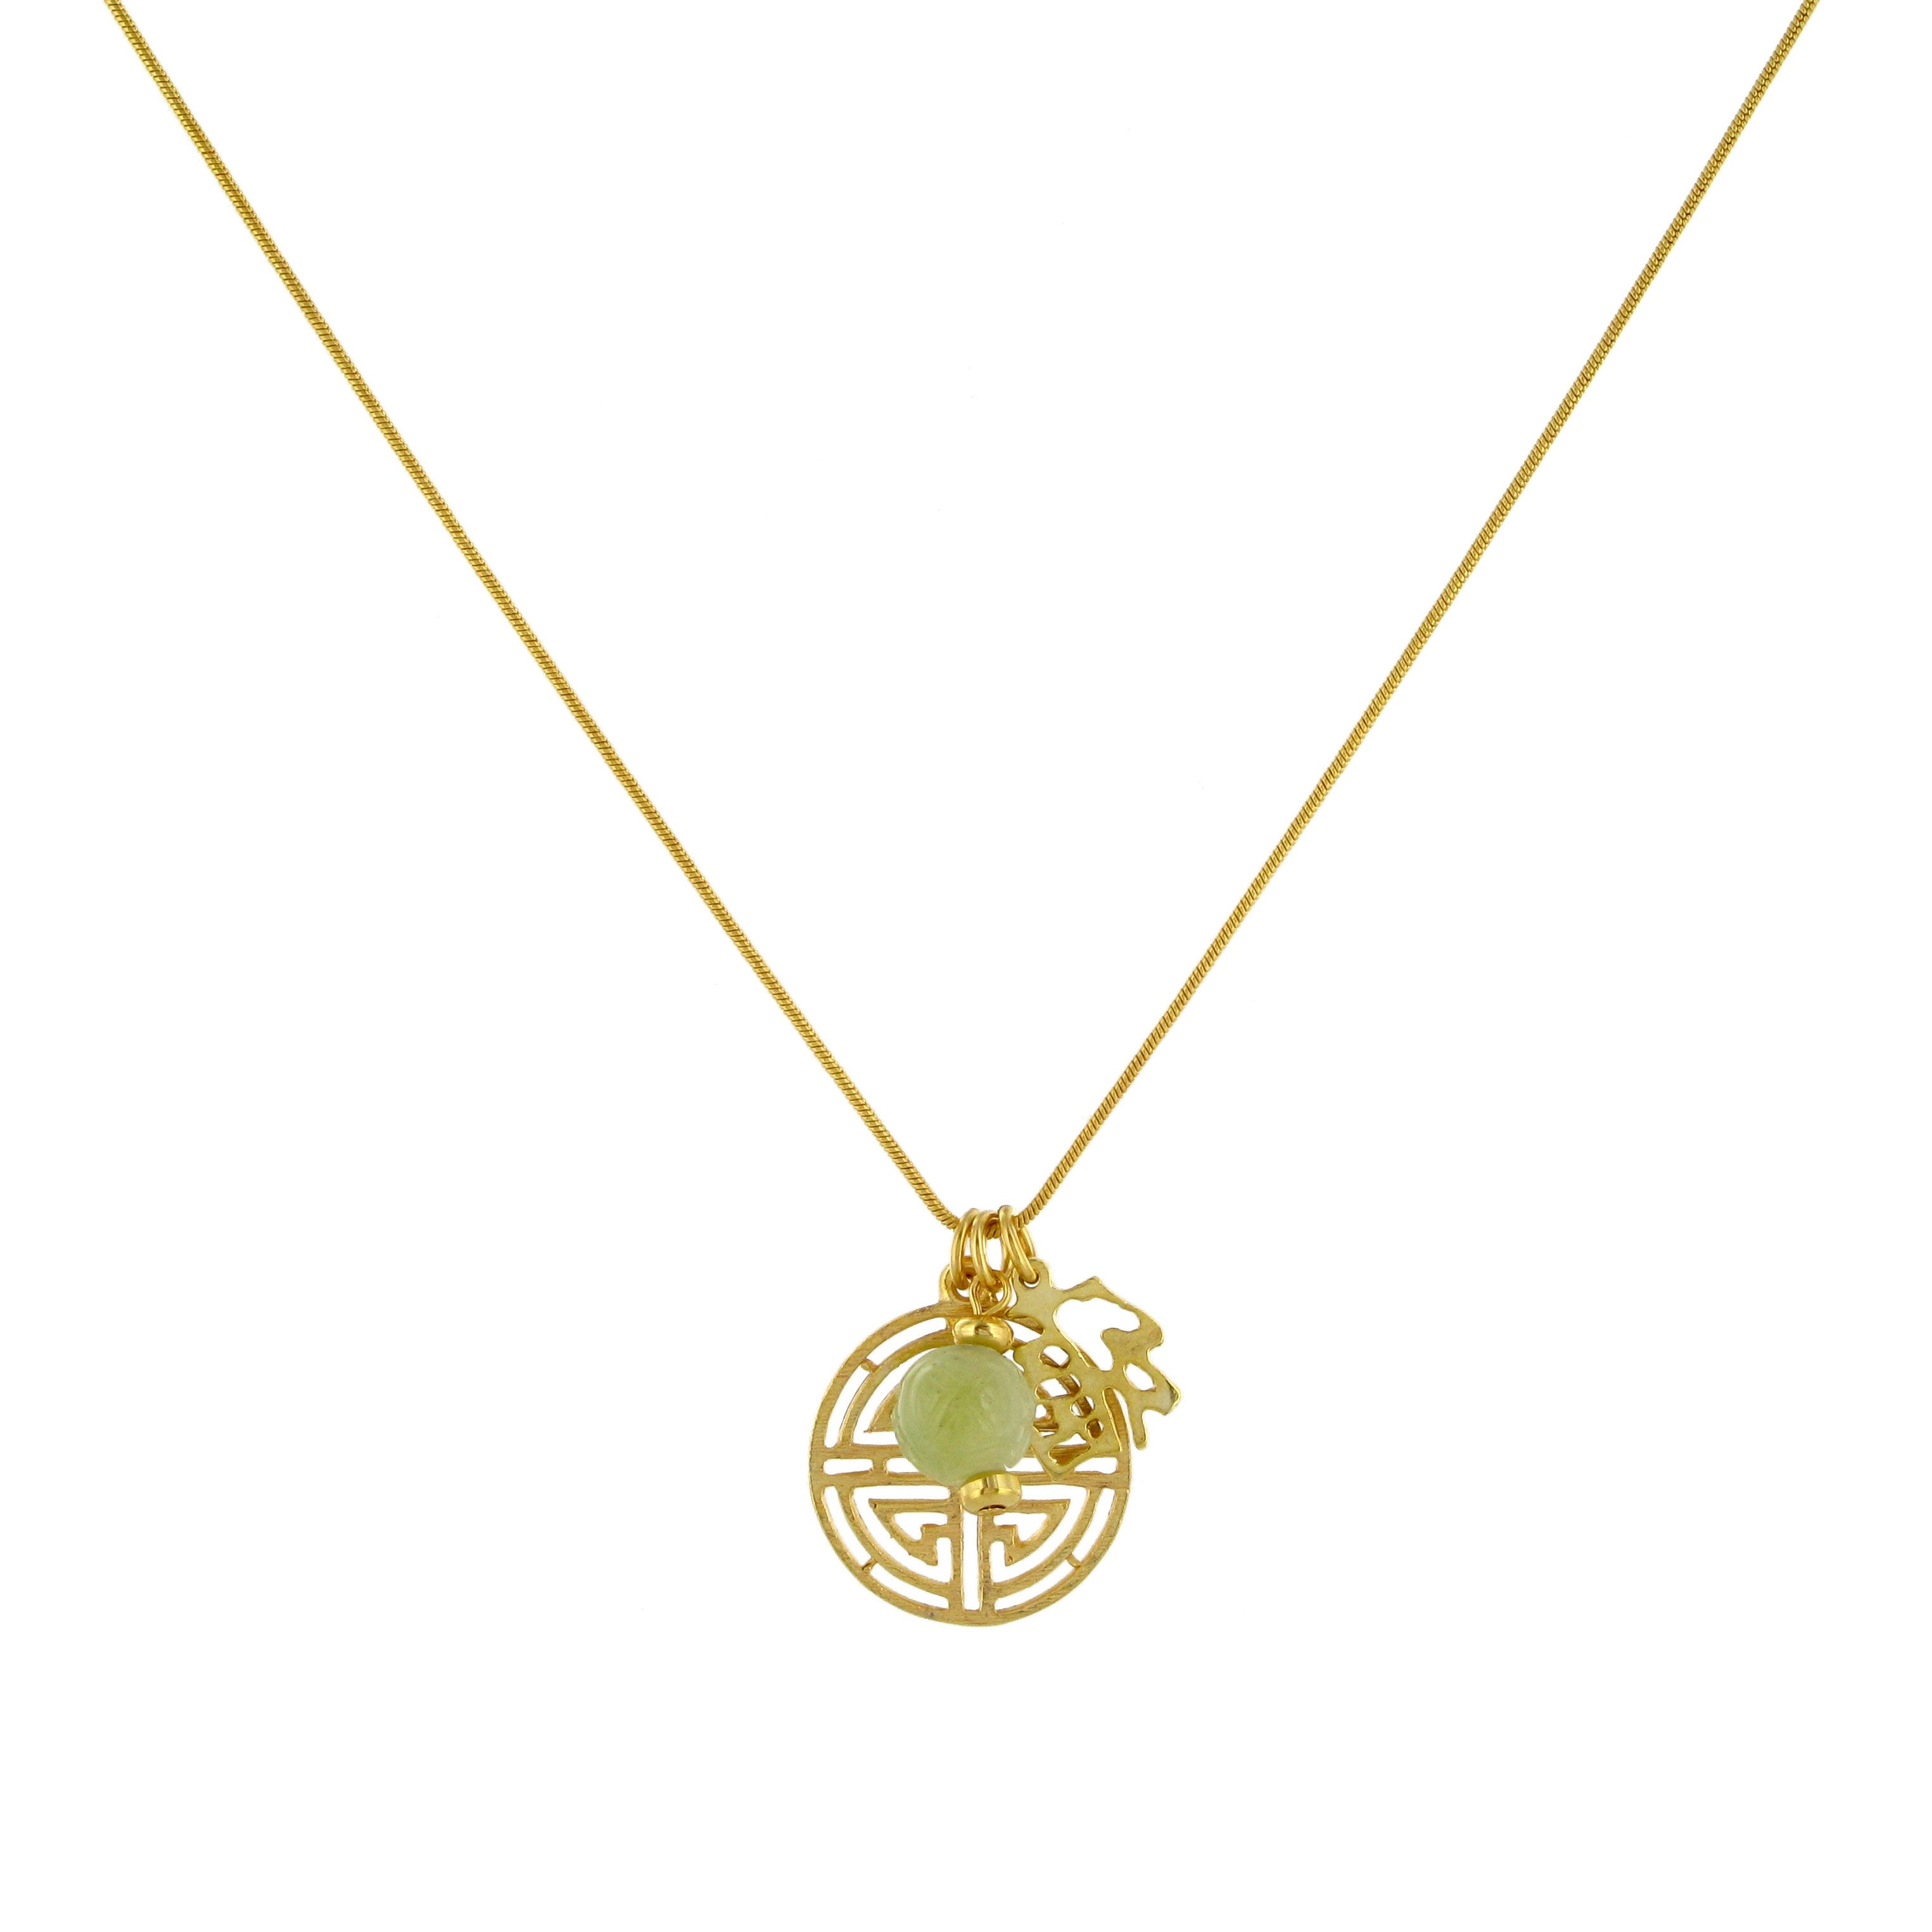 Shou symbol necklace chinese symbols symbols and gold a gold plate necklace featuring the chinese symbol for longevity called shou 35 buycottarizona